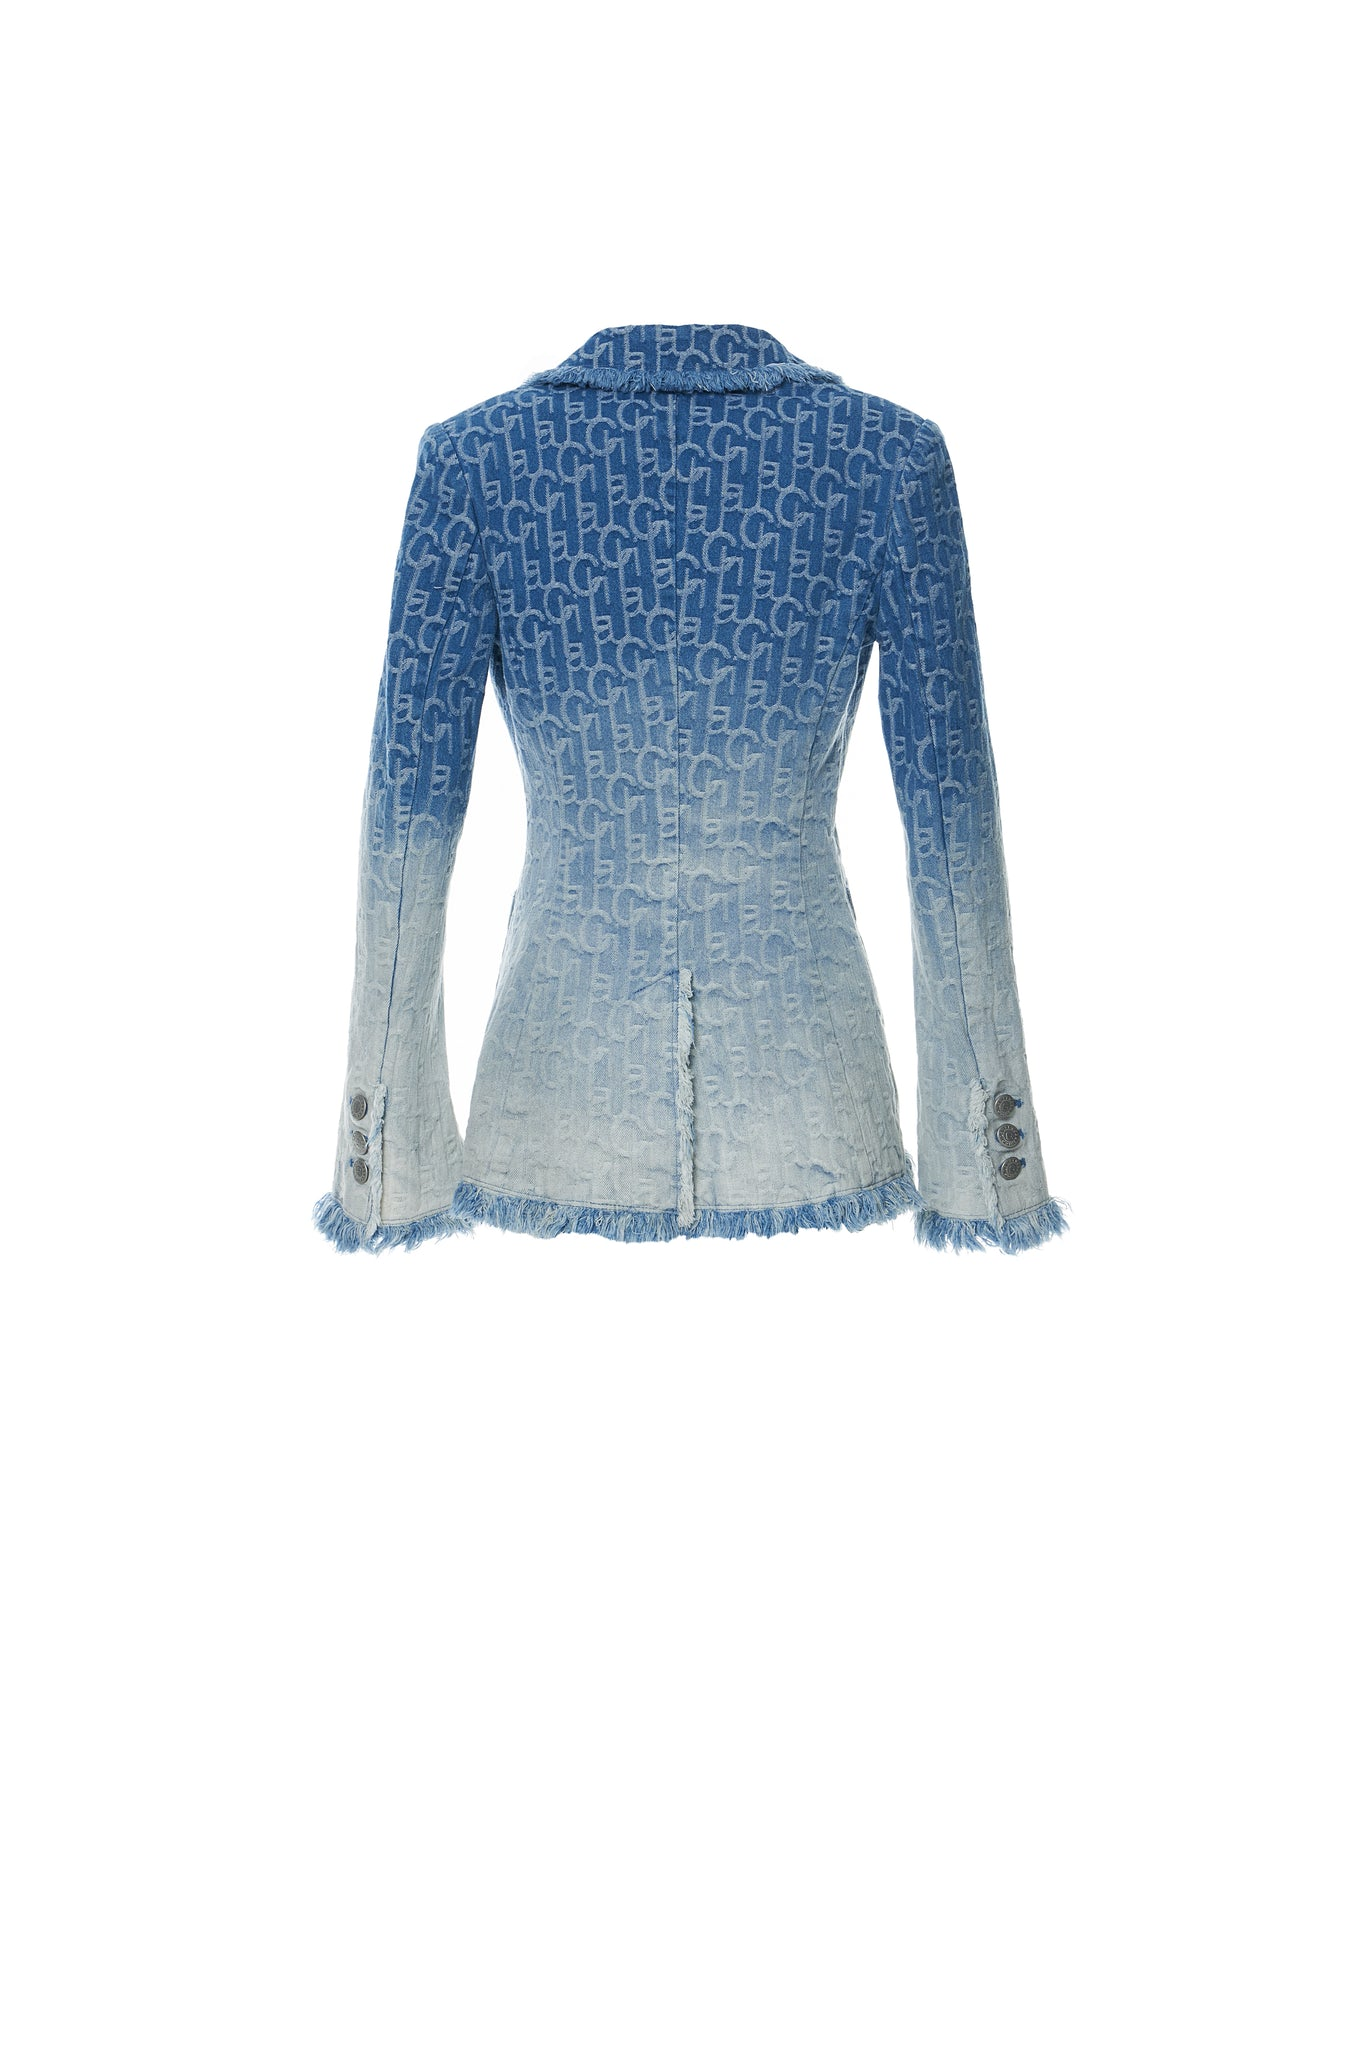 Laulau Chichi Ombre Denim Jacquard Tailored Blazer,Light Blue